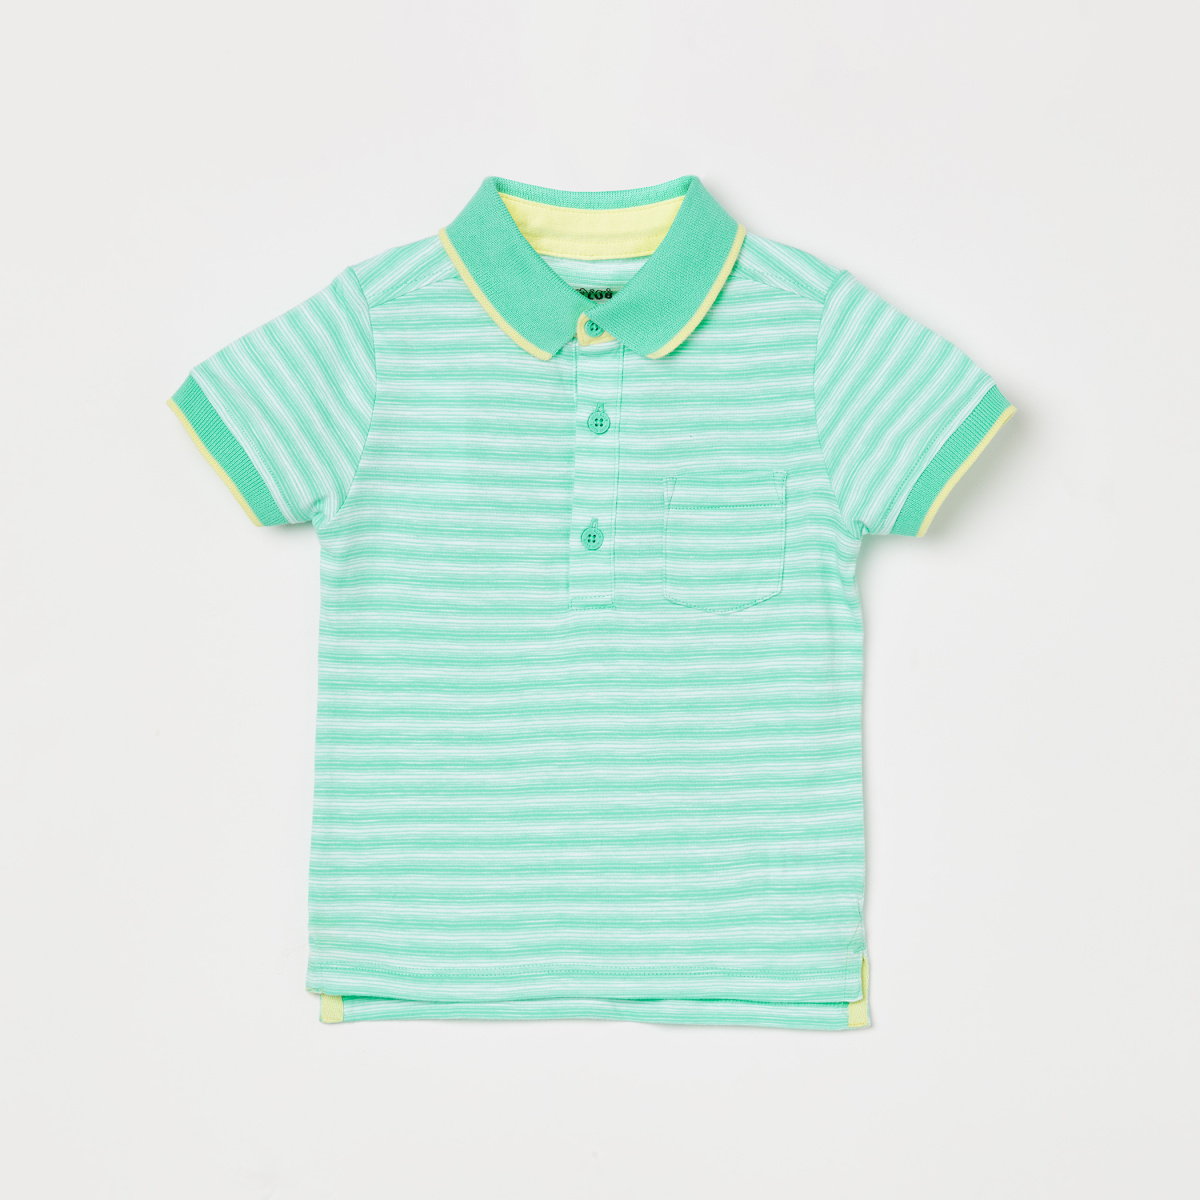 FS MINI KLUB Striped Print Short Sleeves Polo T-shirt